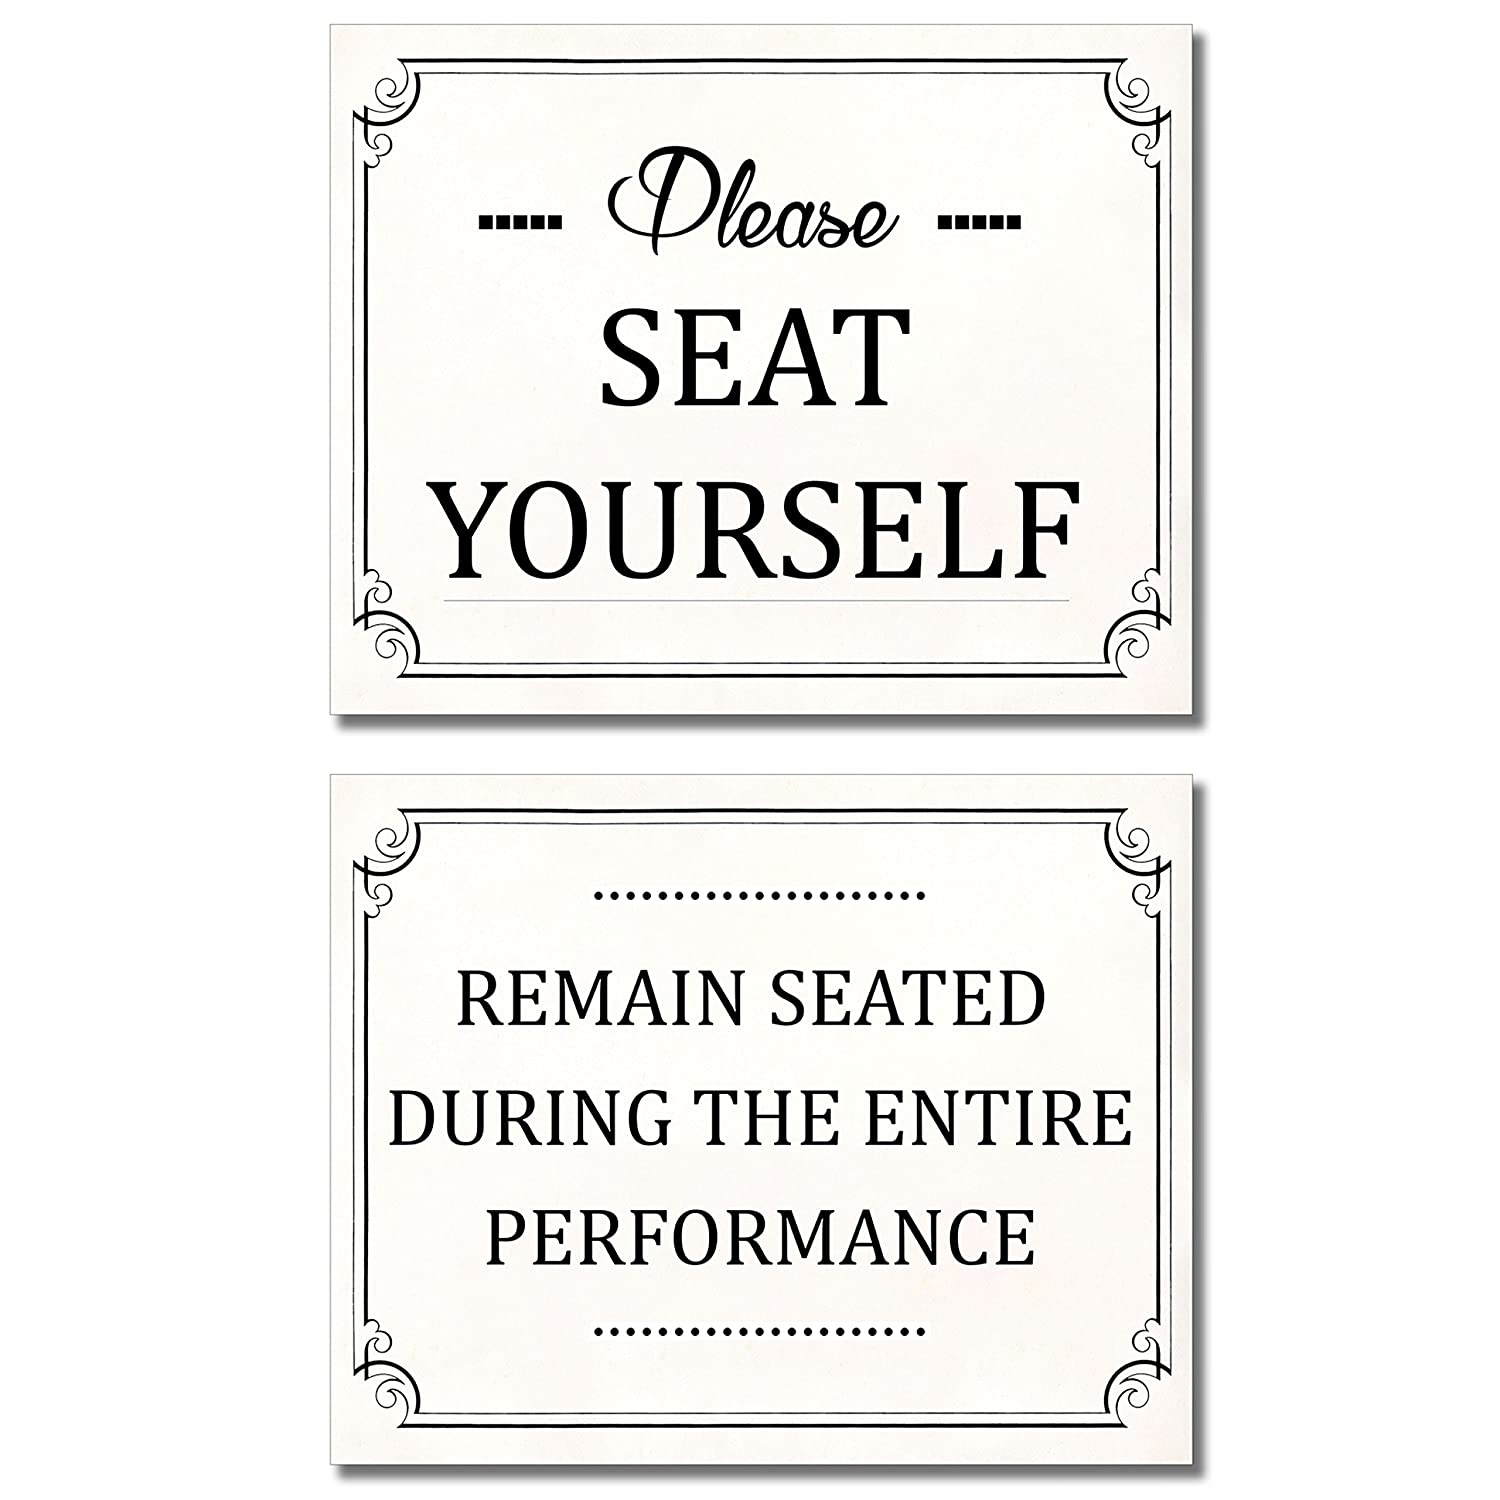 Bathroom funny wall art prints set of two 8x10 photos please seat yourself